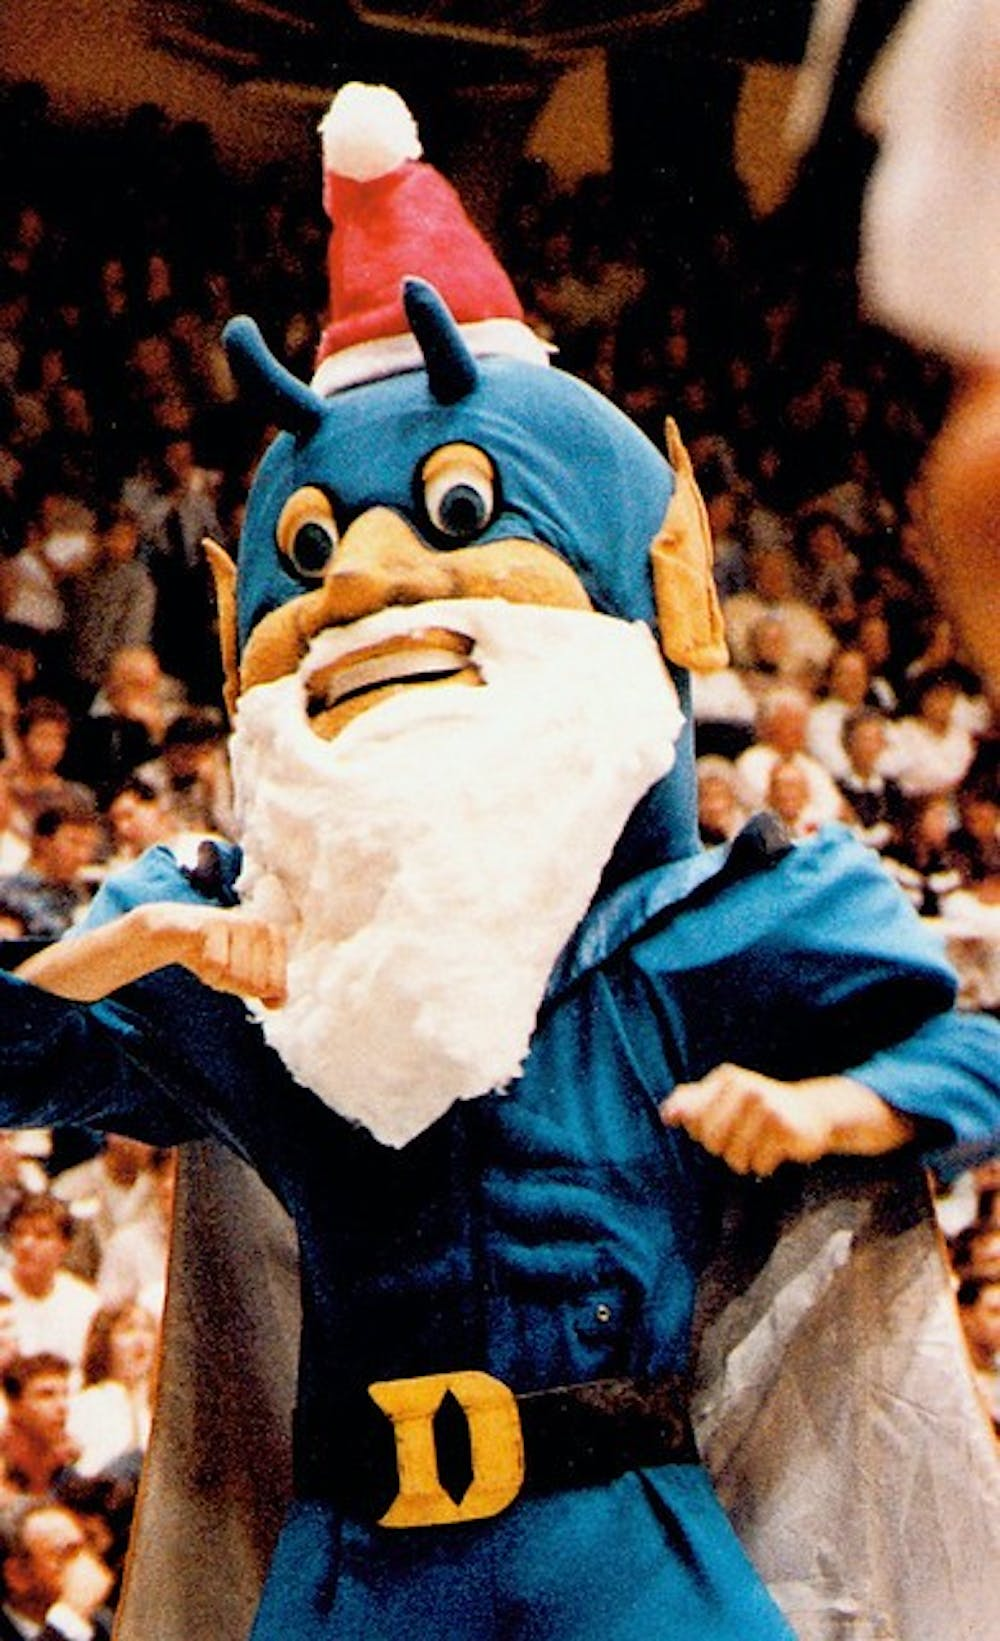 The Blue Devil masquerades as Santa Claus in 1986